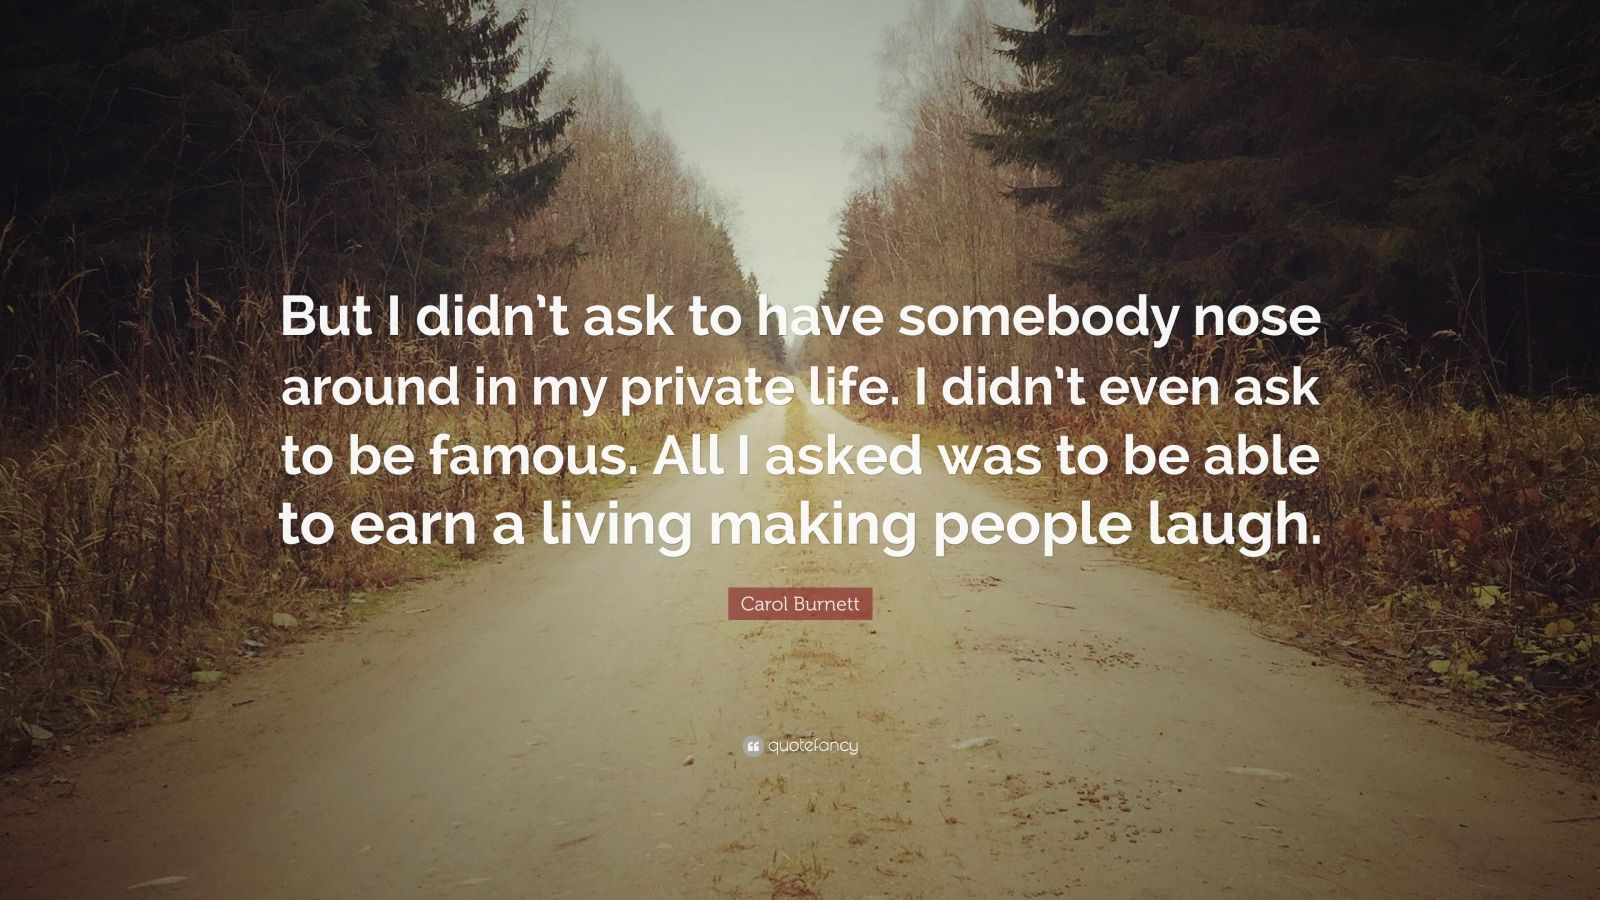 """Carol Burnett Quote: """"But I didn't ask to have somebody nose around in my private life. I didn't even ask to be famous. All I asked was to be able to earn a living making people laugh."""""""